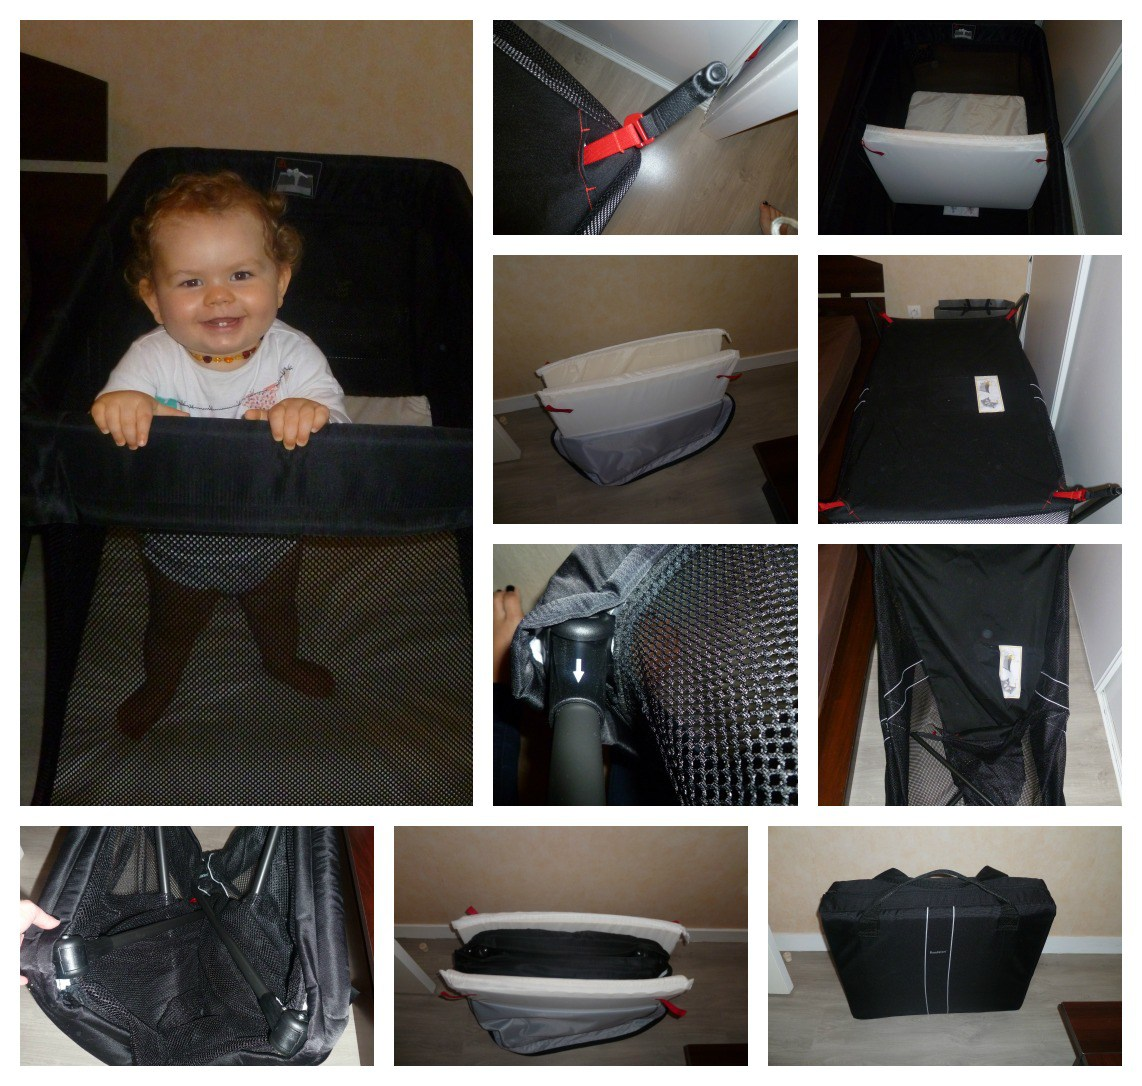 concours le lit light babybjorn maman floutch blog. Black Bedroom Furniture Sets. Home Design Ideas